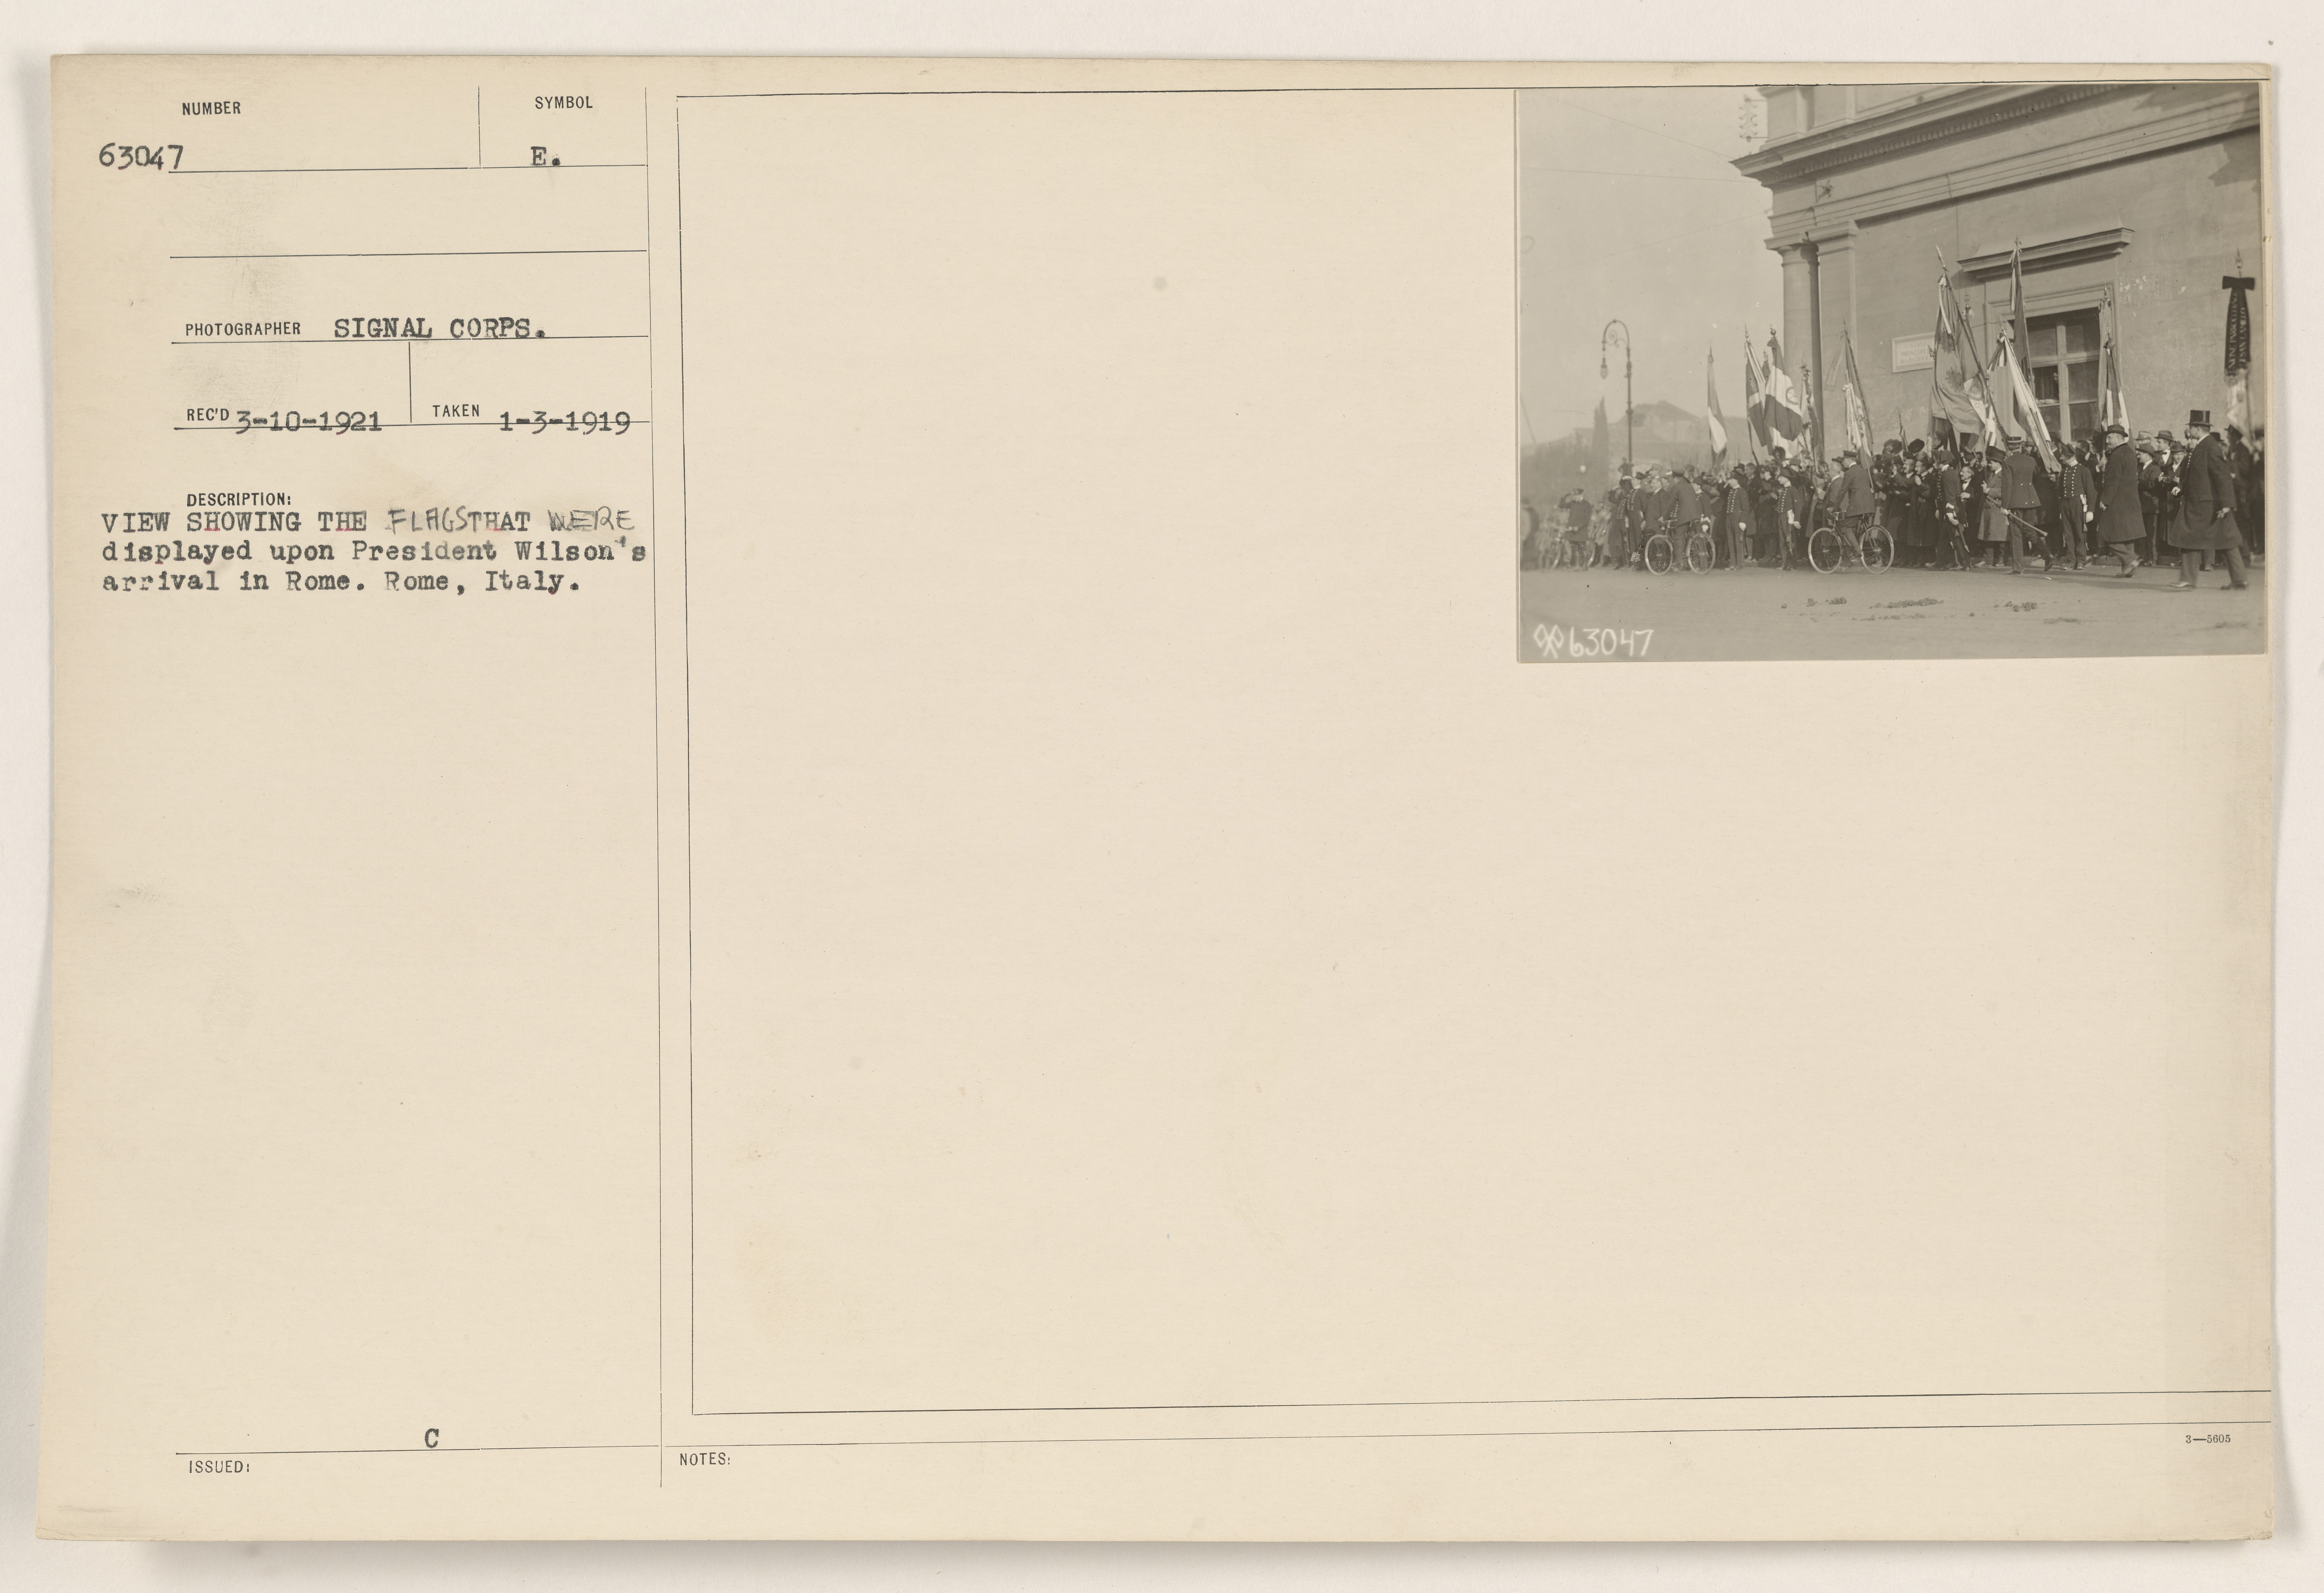 VIEW SHOWING THE FLAGS THAT WERE displayed upon President Wilson's arrival in Rome, Rome, Italy